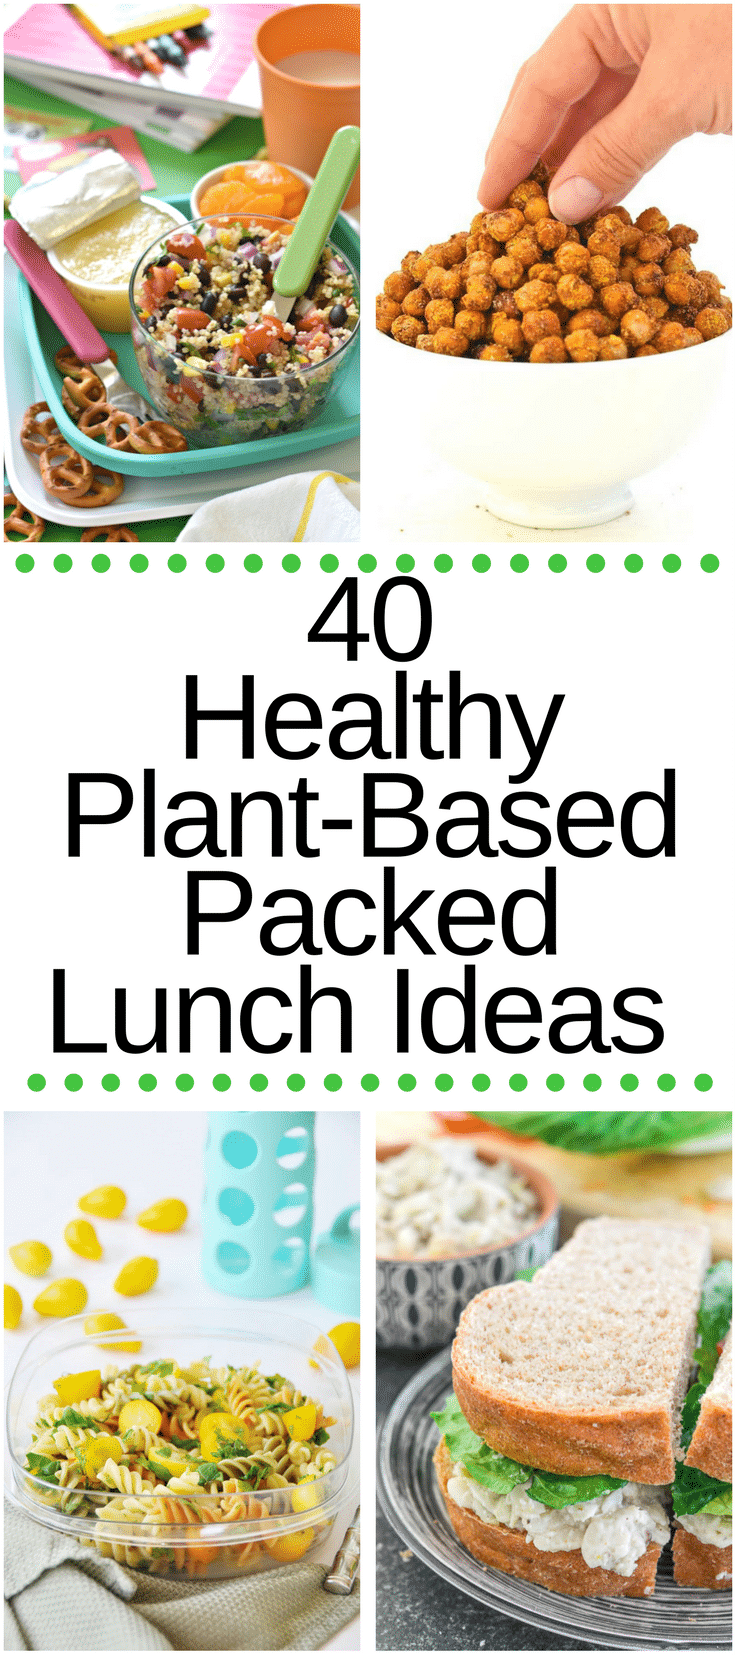 Keeping packed lunches interesting is no easy task but I've got you covered with this collection of 40 Healthy Plant-Based Packed Lunch ideas!